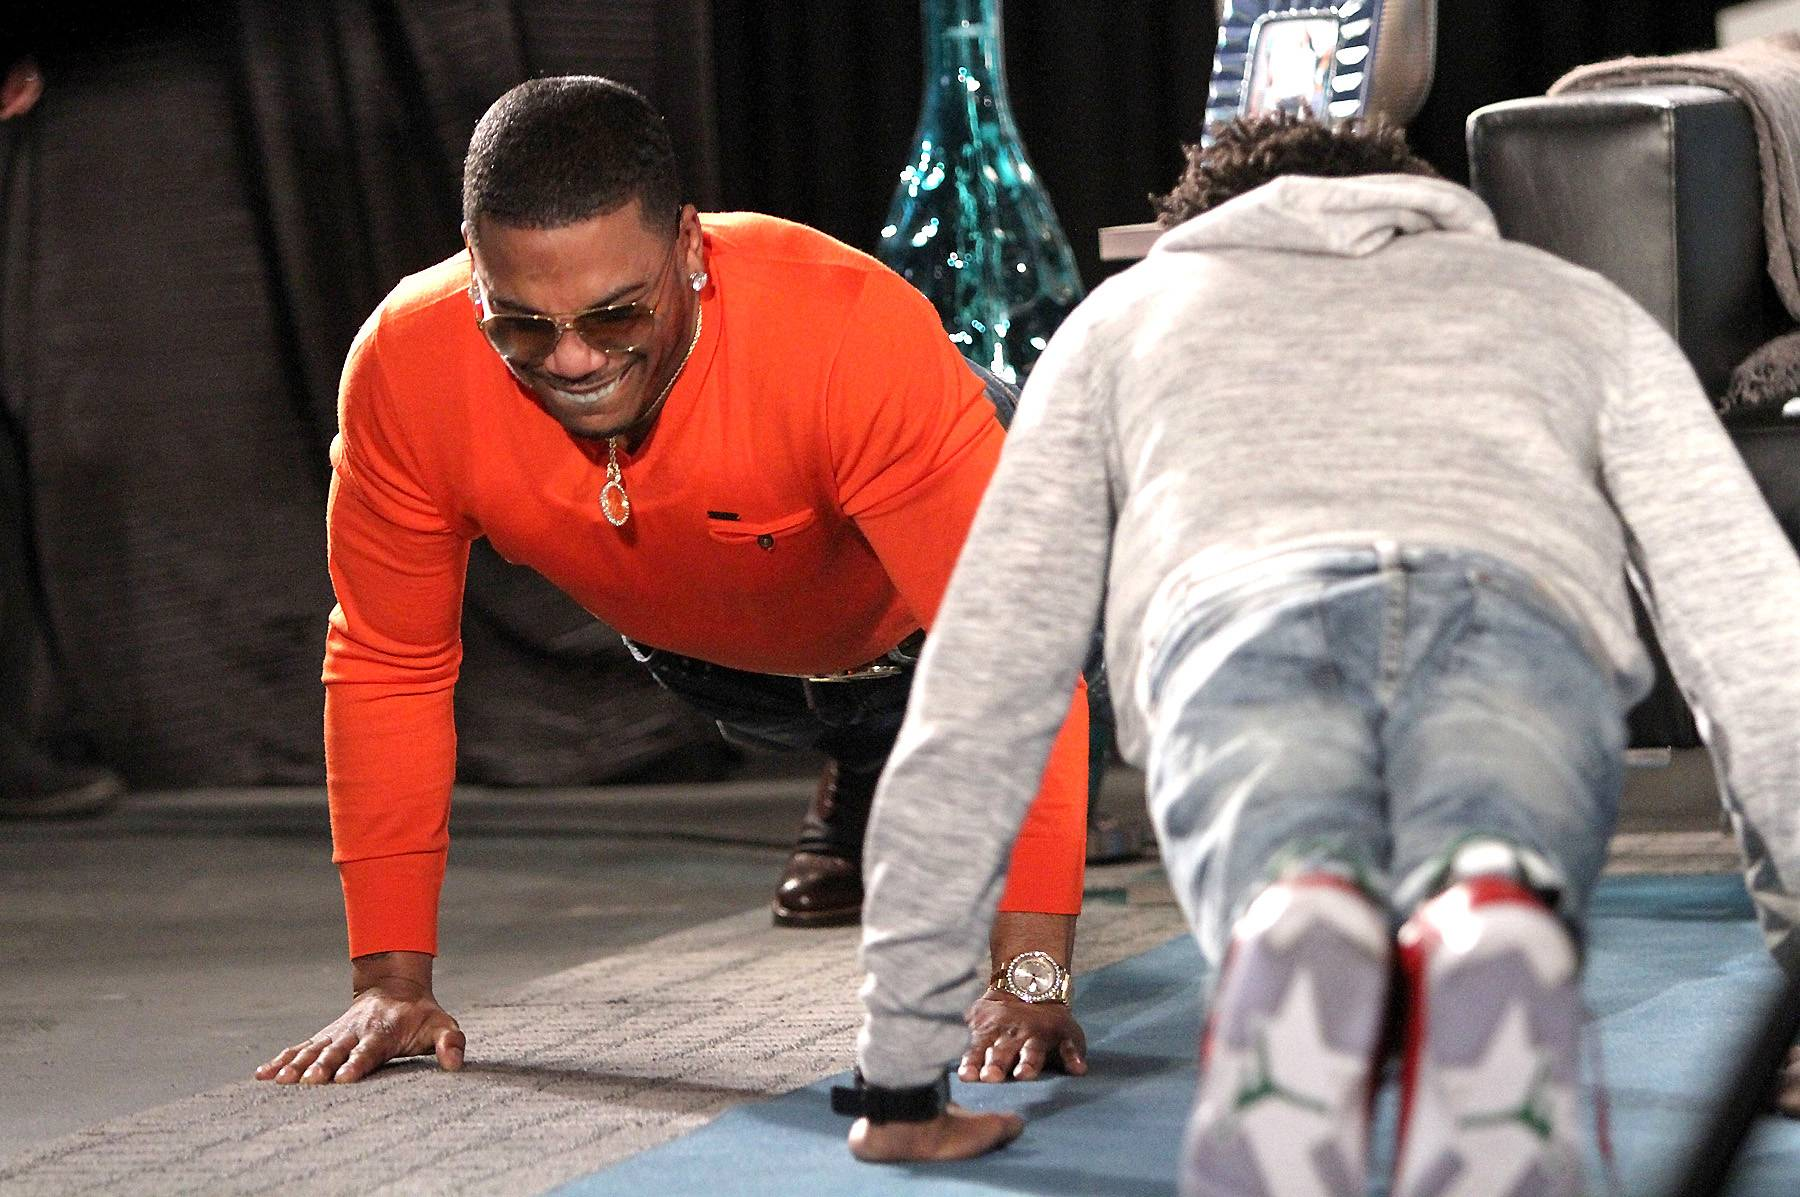 A Little Competition - Nelly shows Tre that he's still the man with the workout plan.   (Photo: Maury Phillips/WireImage)